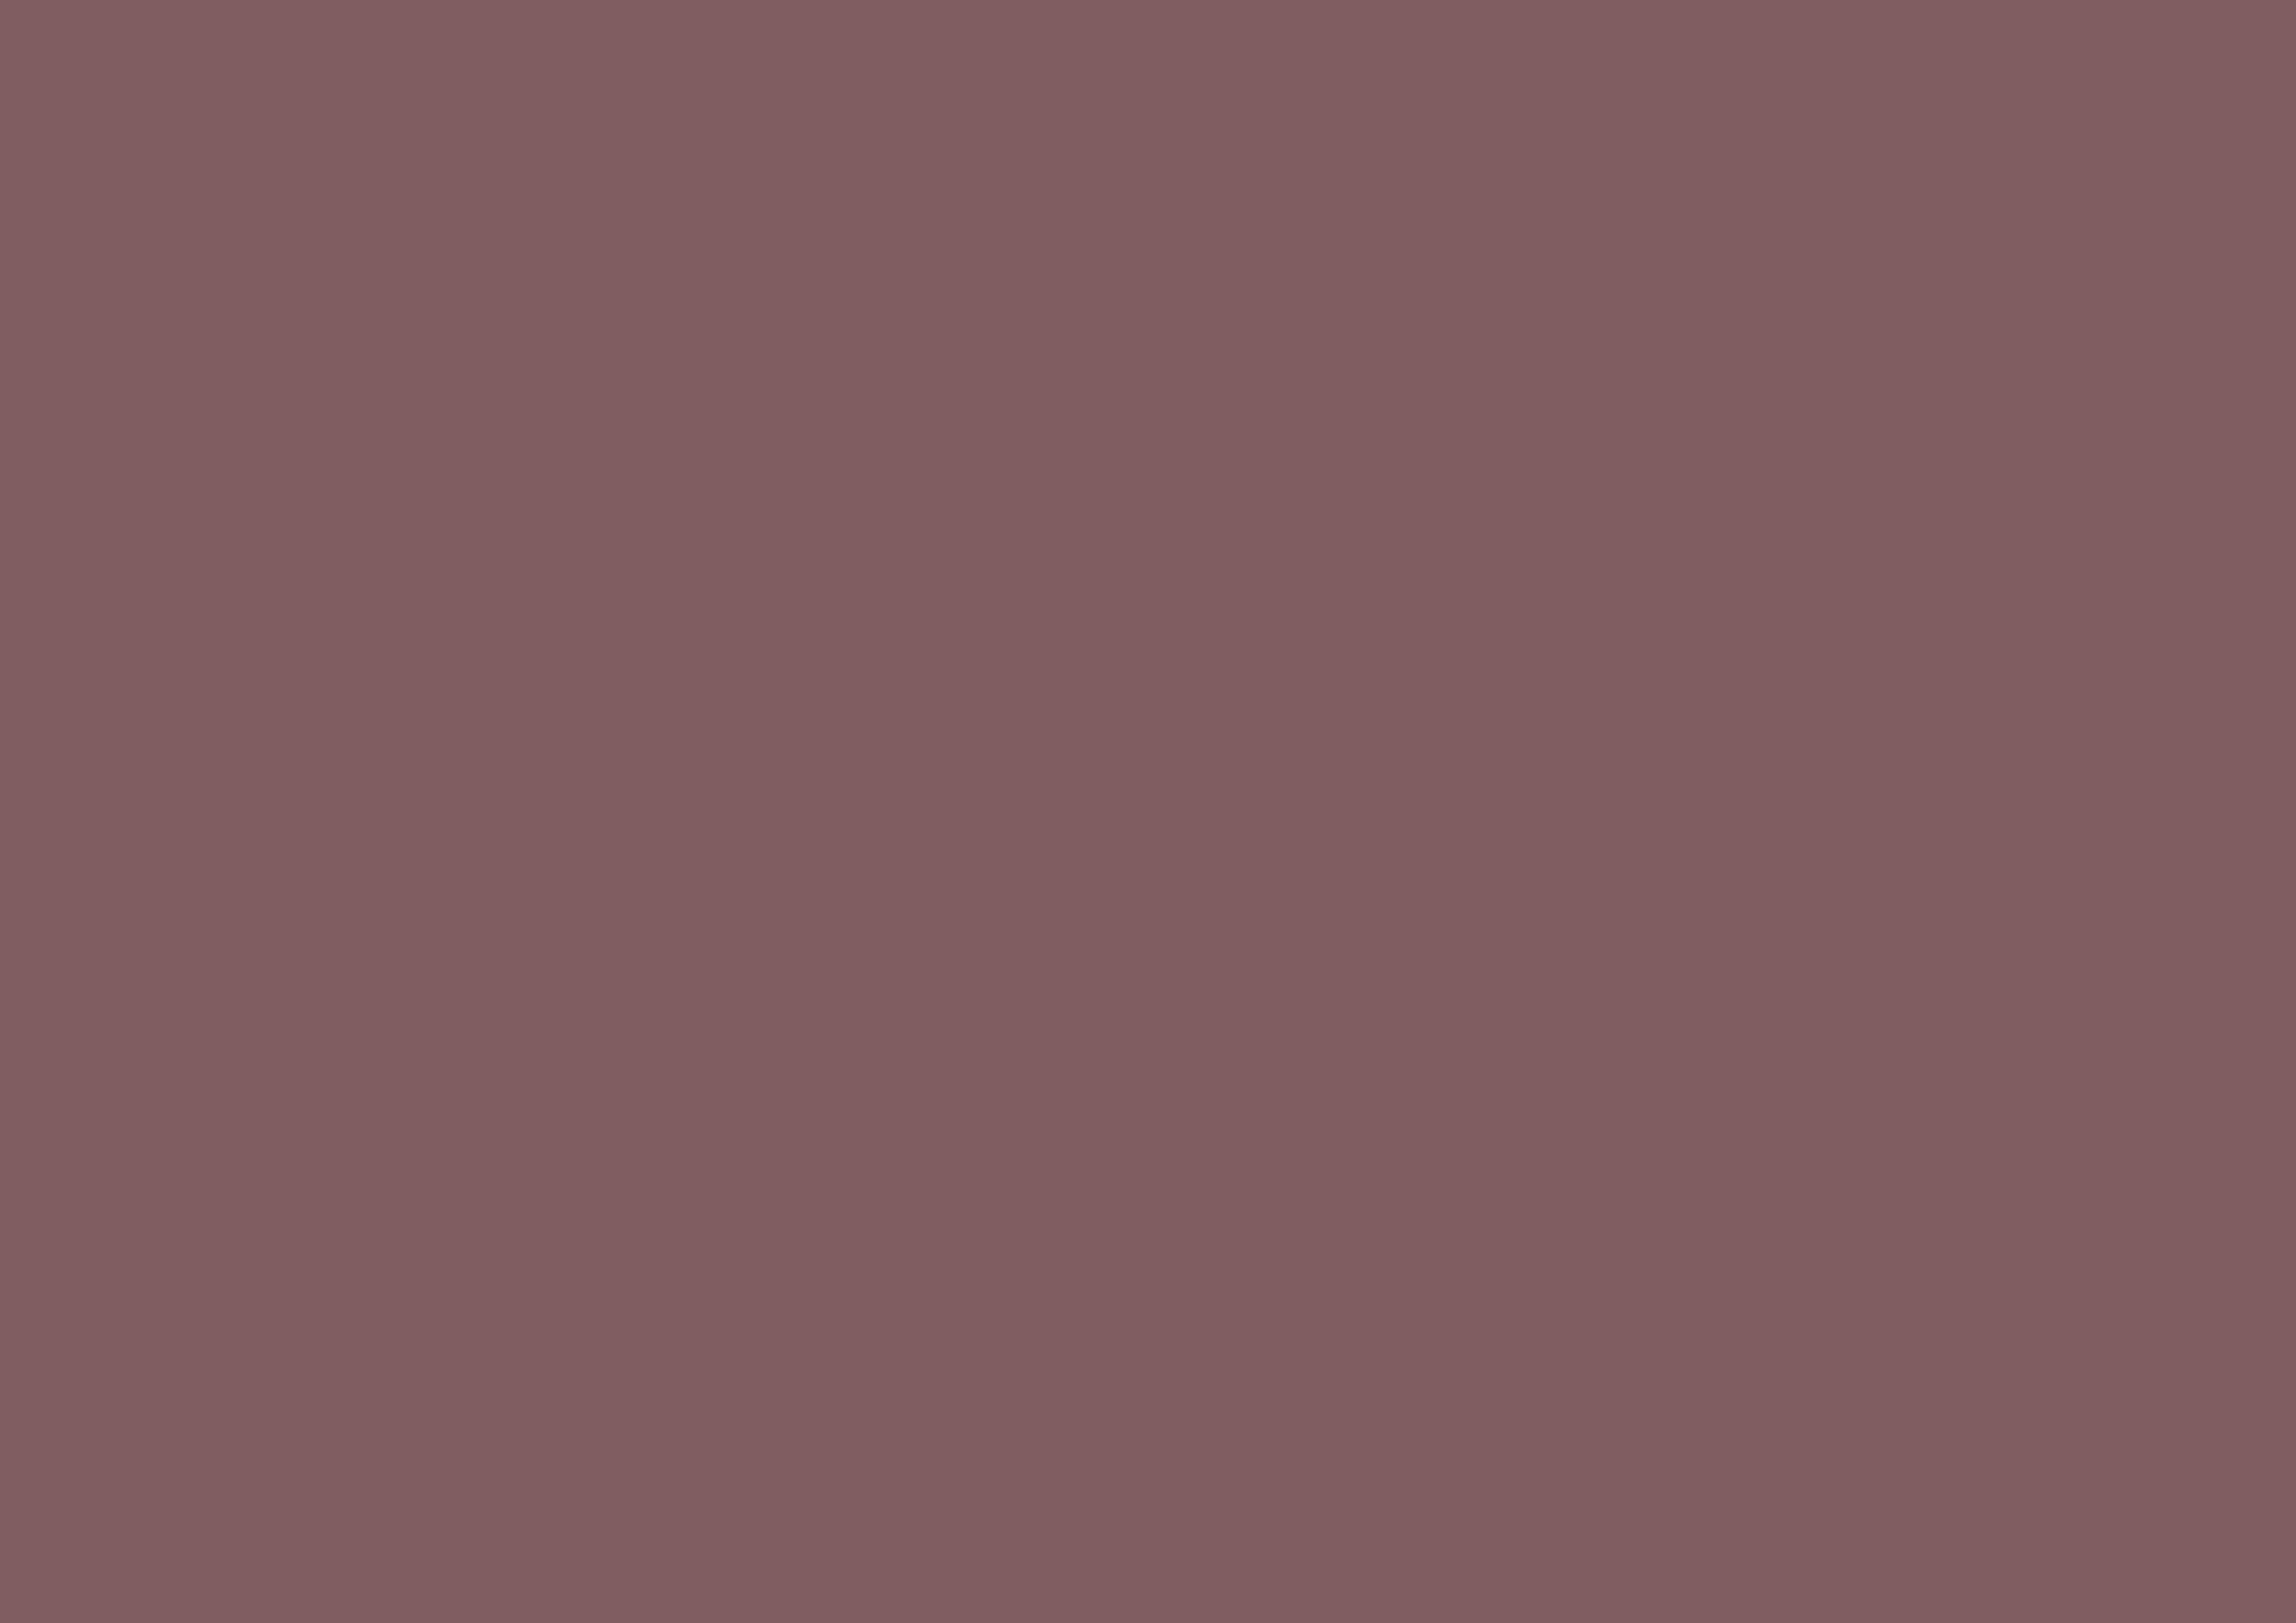 3508x2480 Deep Taupe Solid Color Background